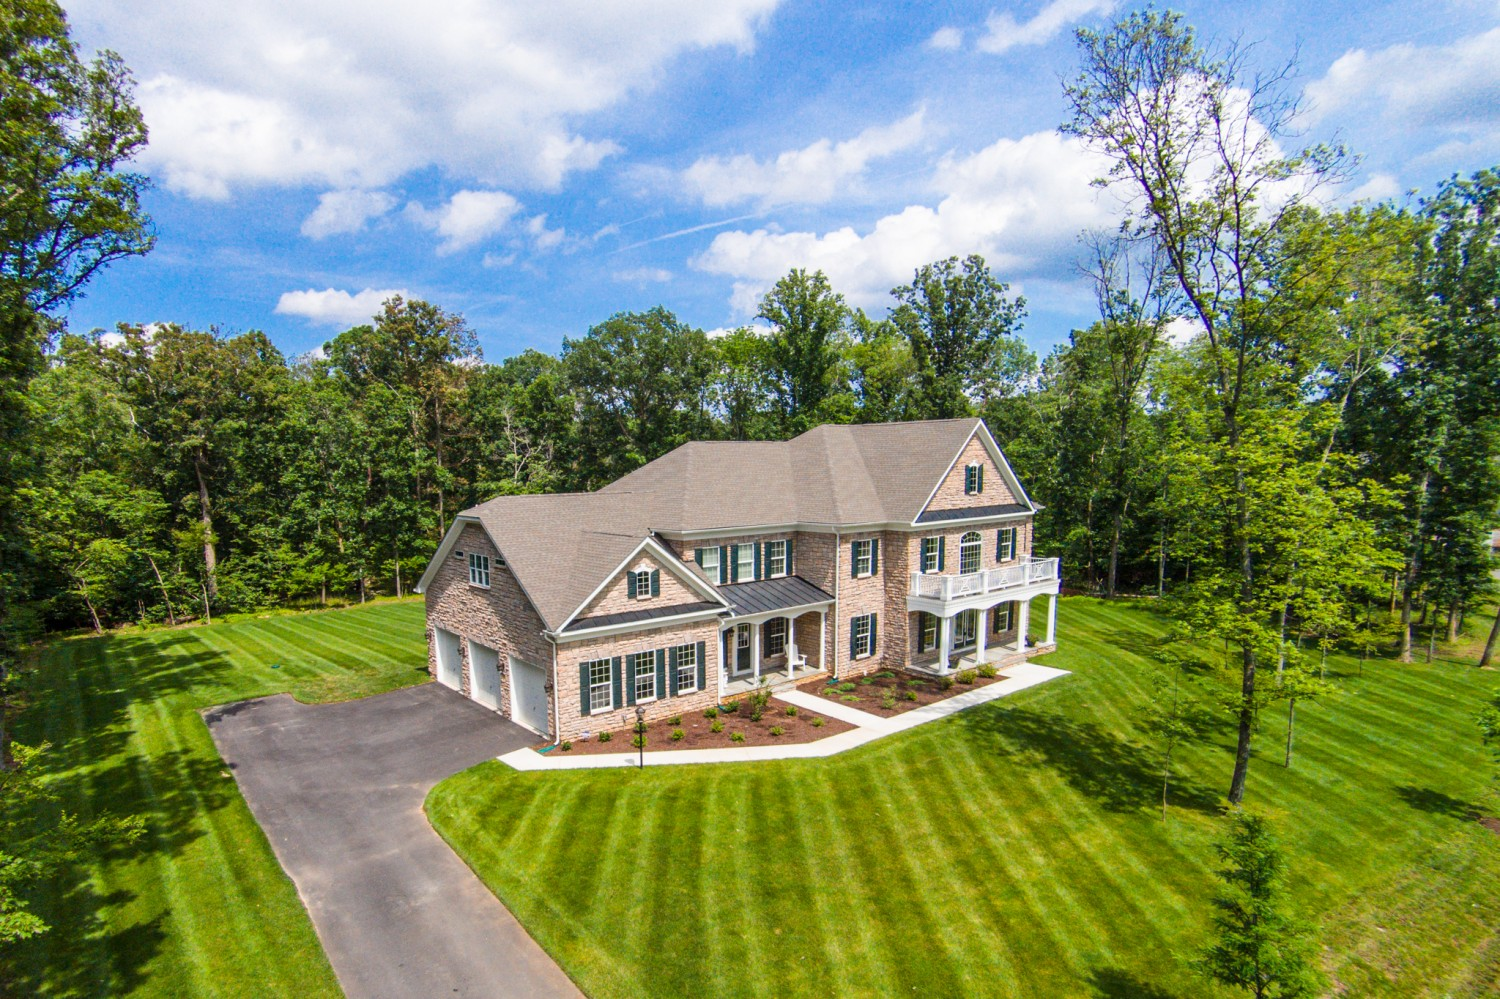 Residential Real Estate Aerial Drone Photography